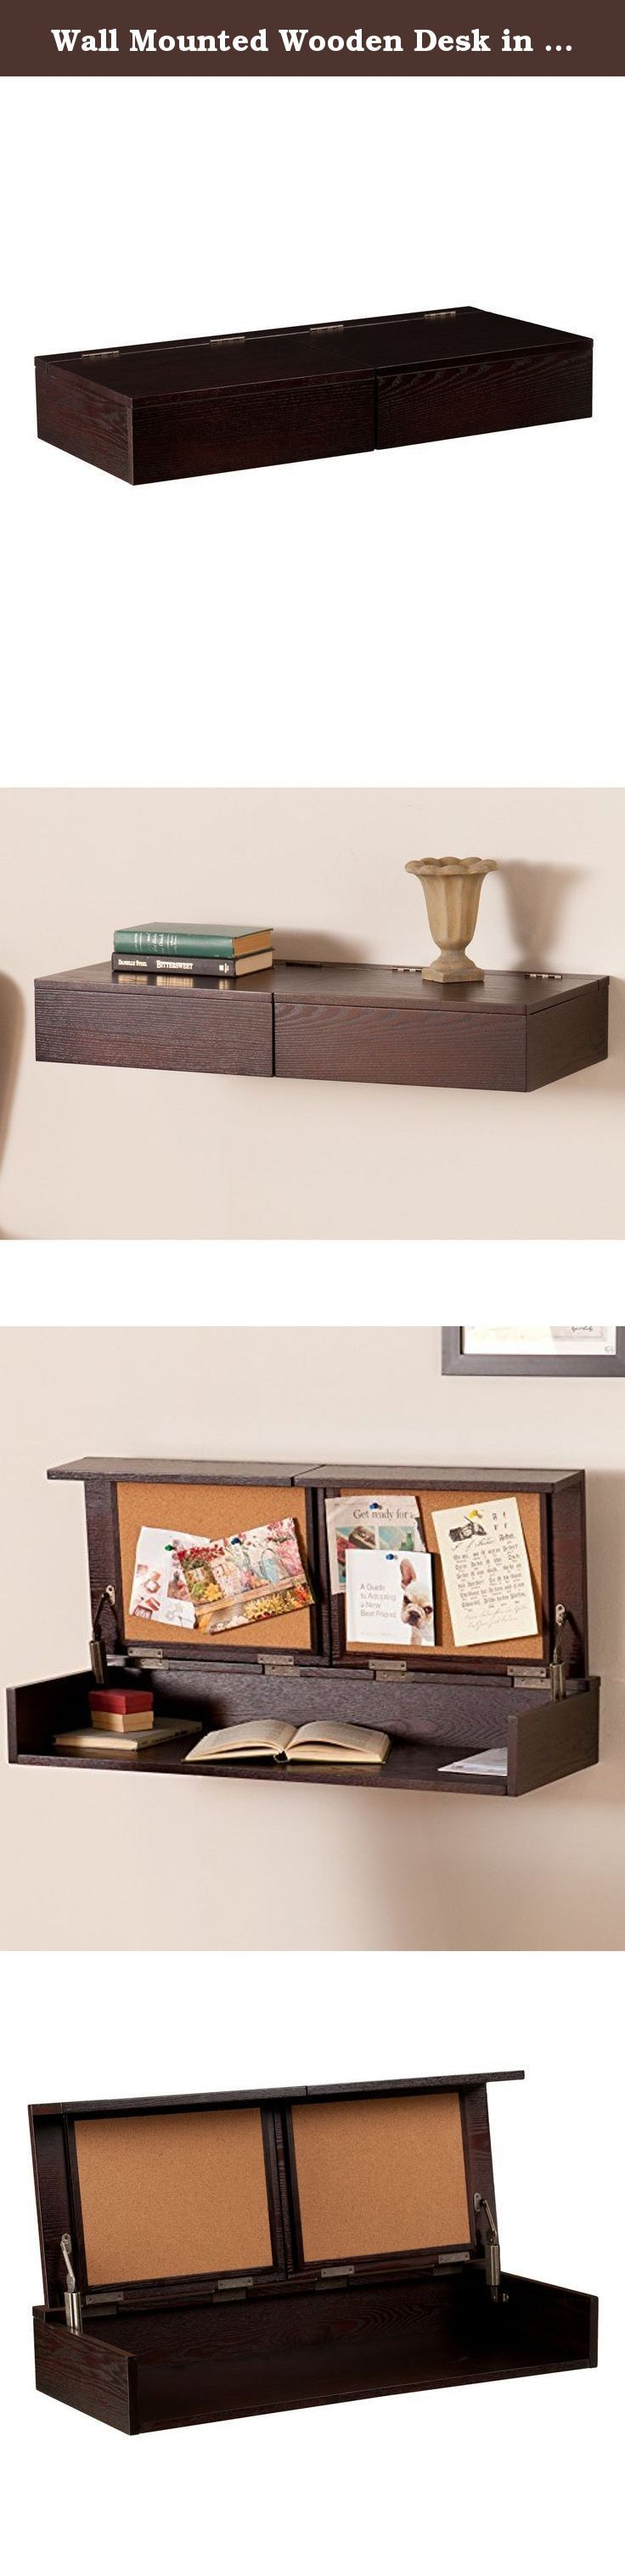 Wall Mounted Wooden Desk in Espresso Finish 20 Pounds Weight Capacity Transitional Style Dimensions 17.5'' H x 32'' W x 14'' D. This double duty wall mount desk and shelf tucks away clutter with a split-top that lifts independently, revealing a broad workspace for tidying office accessories or small electronics. Two corkboards pin up to-do lists to keep you on task and the transitional design blends well with any decor. Hang this custom height home office to shelve chaos or keep it closed...